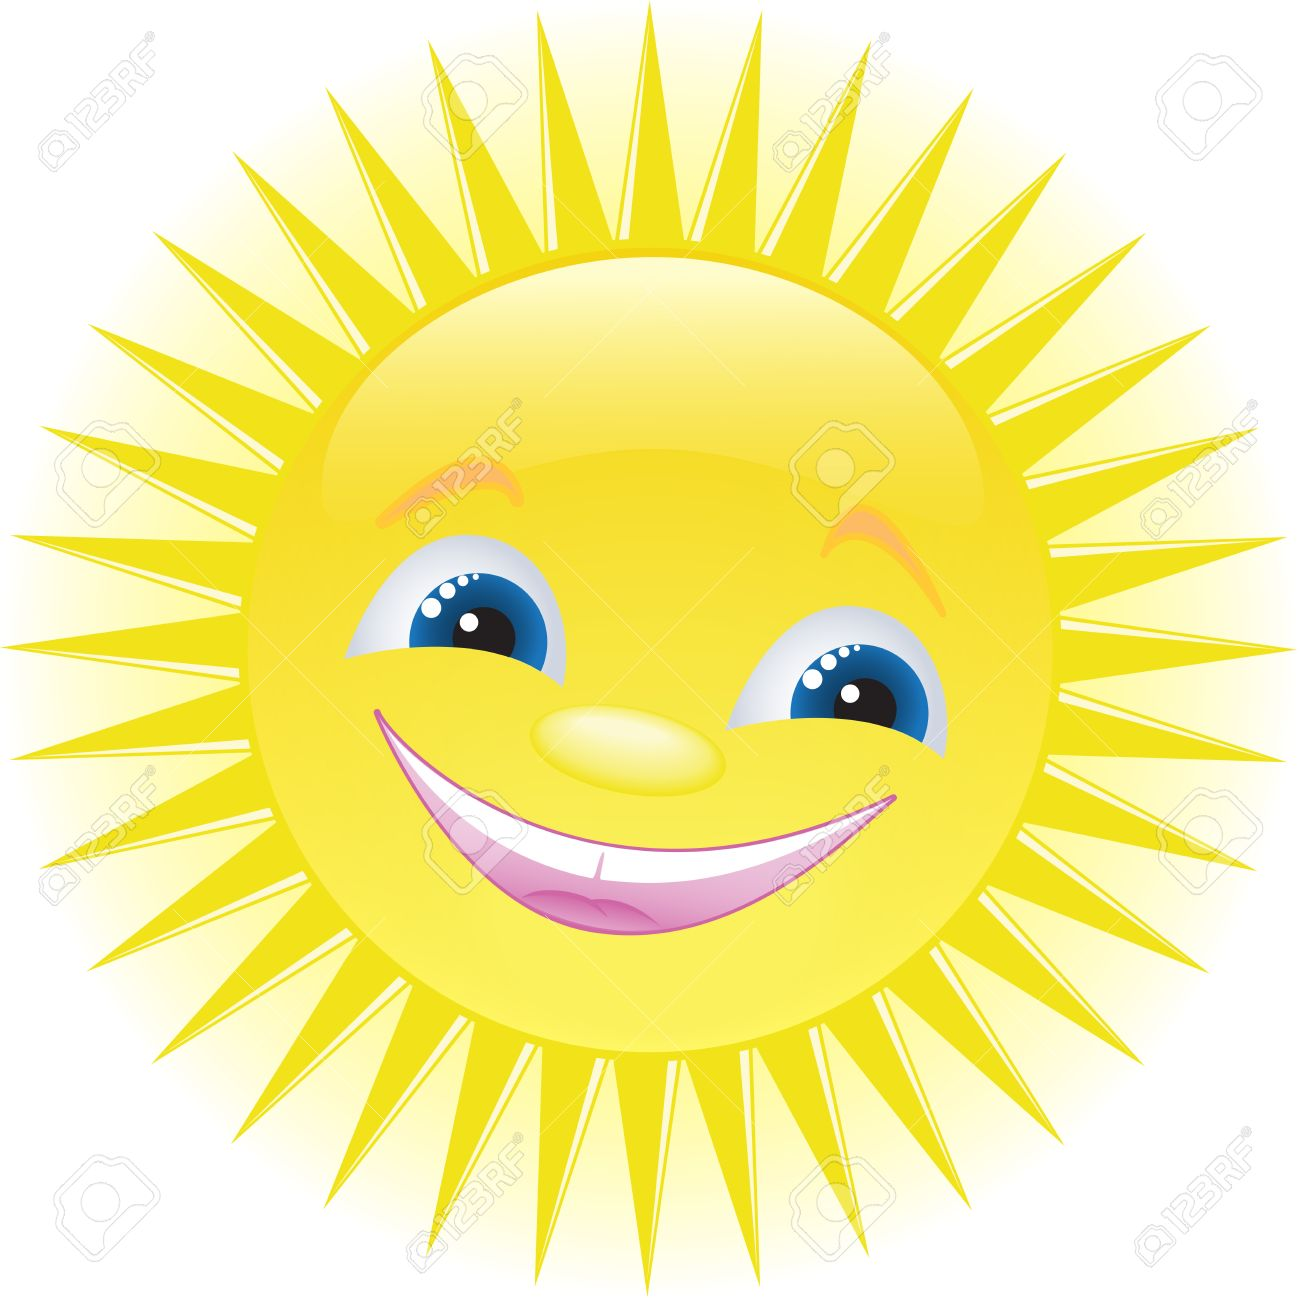 funny smiling sun with blue eyes - 9465152